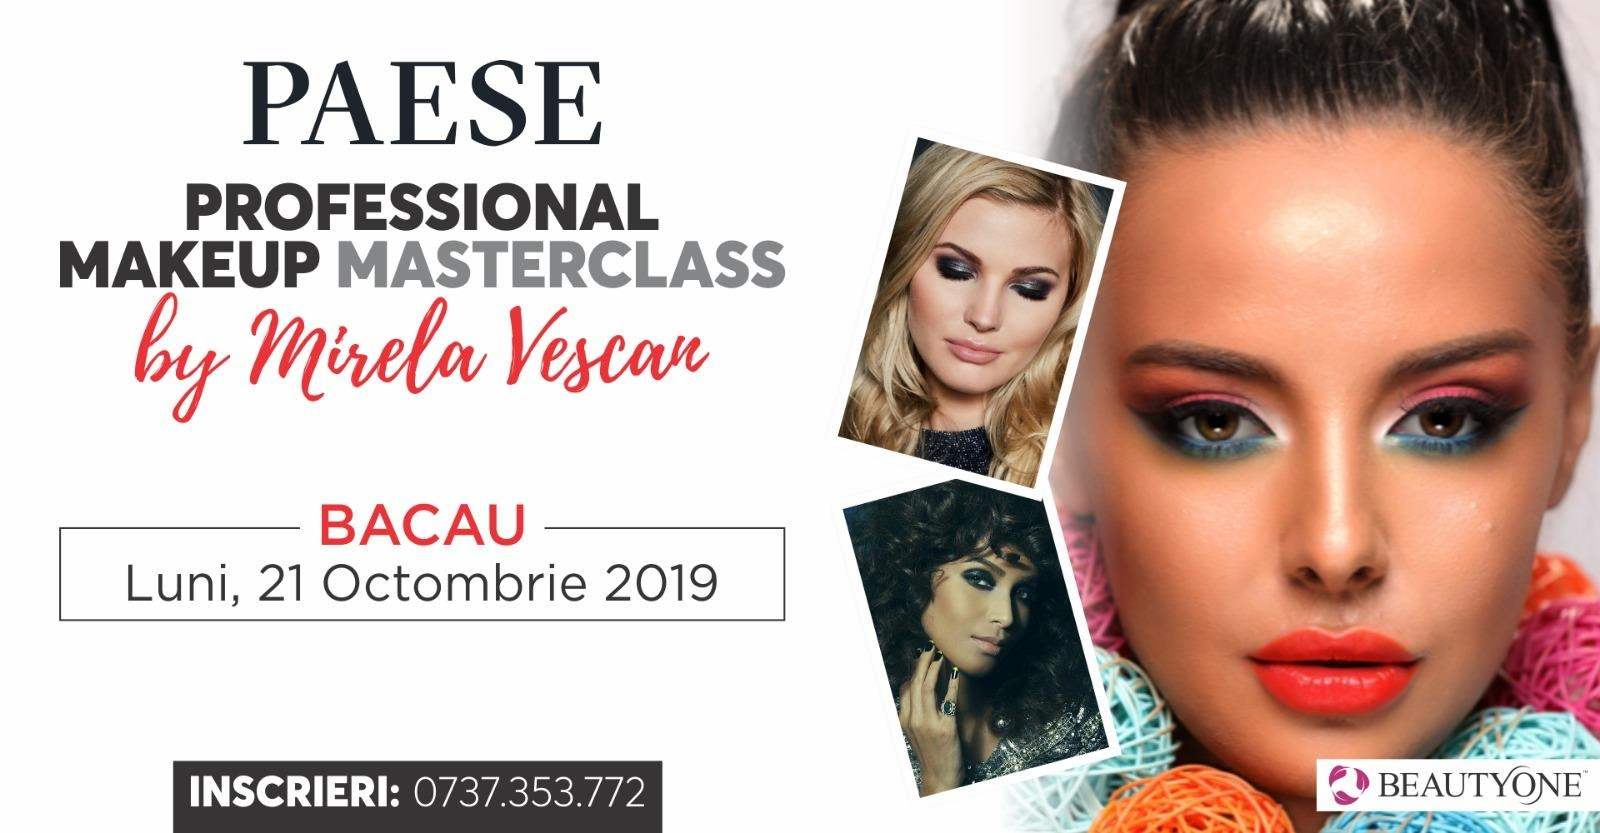 Professional Masterclass Make-up by Mirela Vescan- 21 octombrie 2019